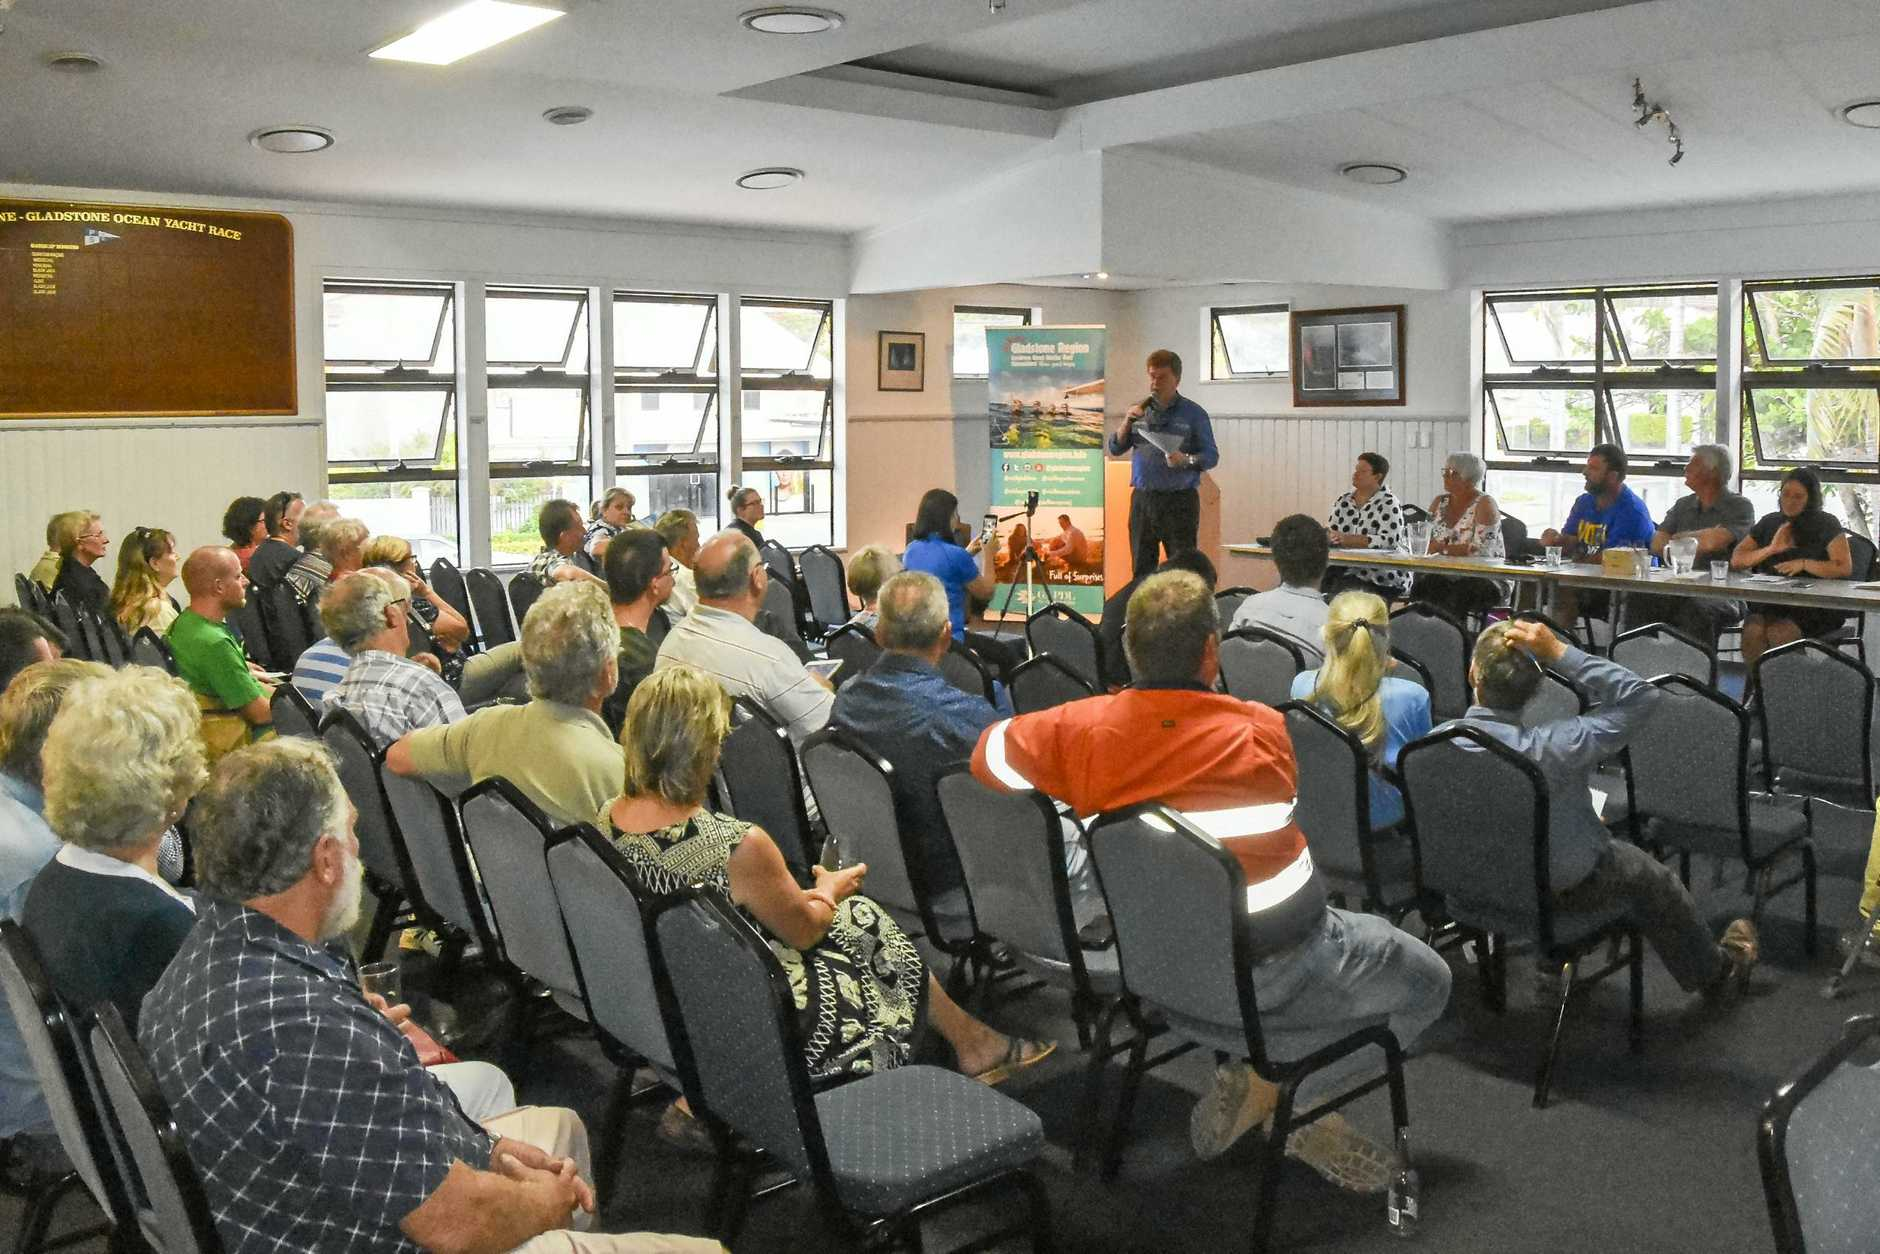 GAPDL held a meet the candidates event ahead of the Gladstone Regional Council by-election